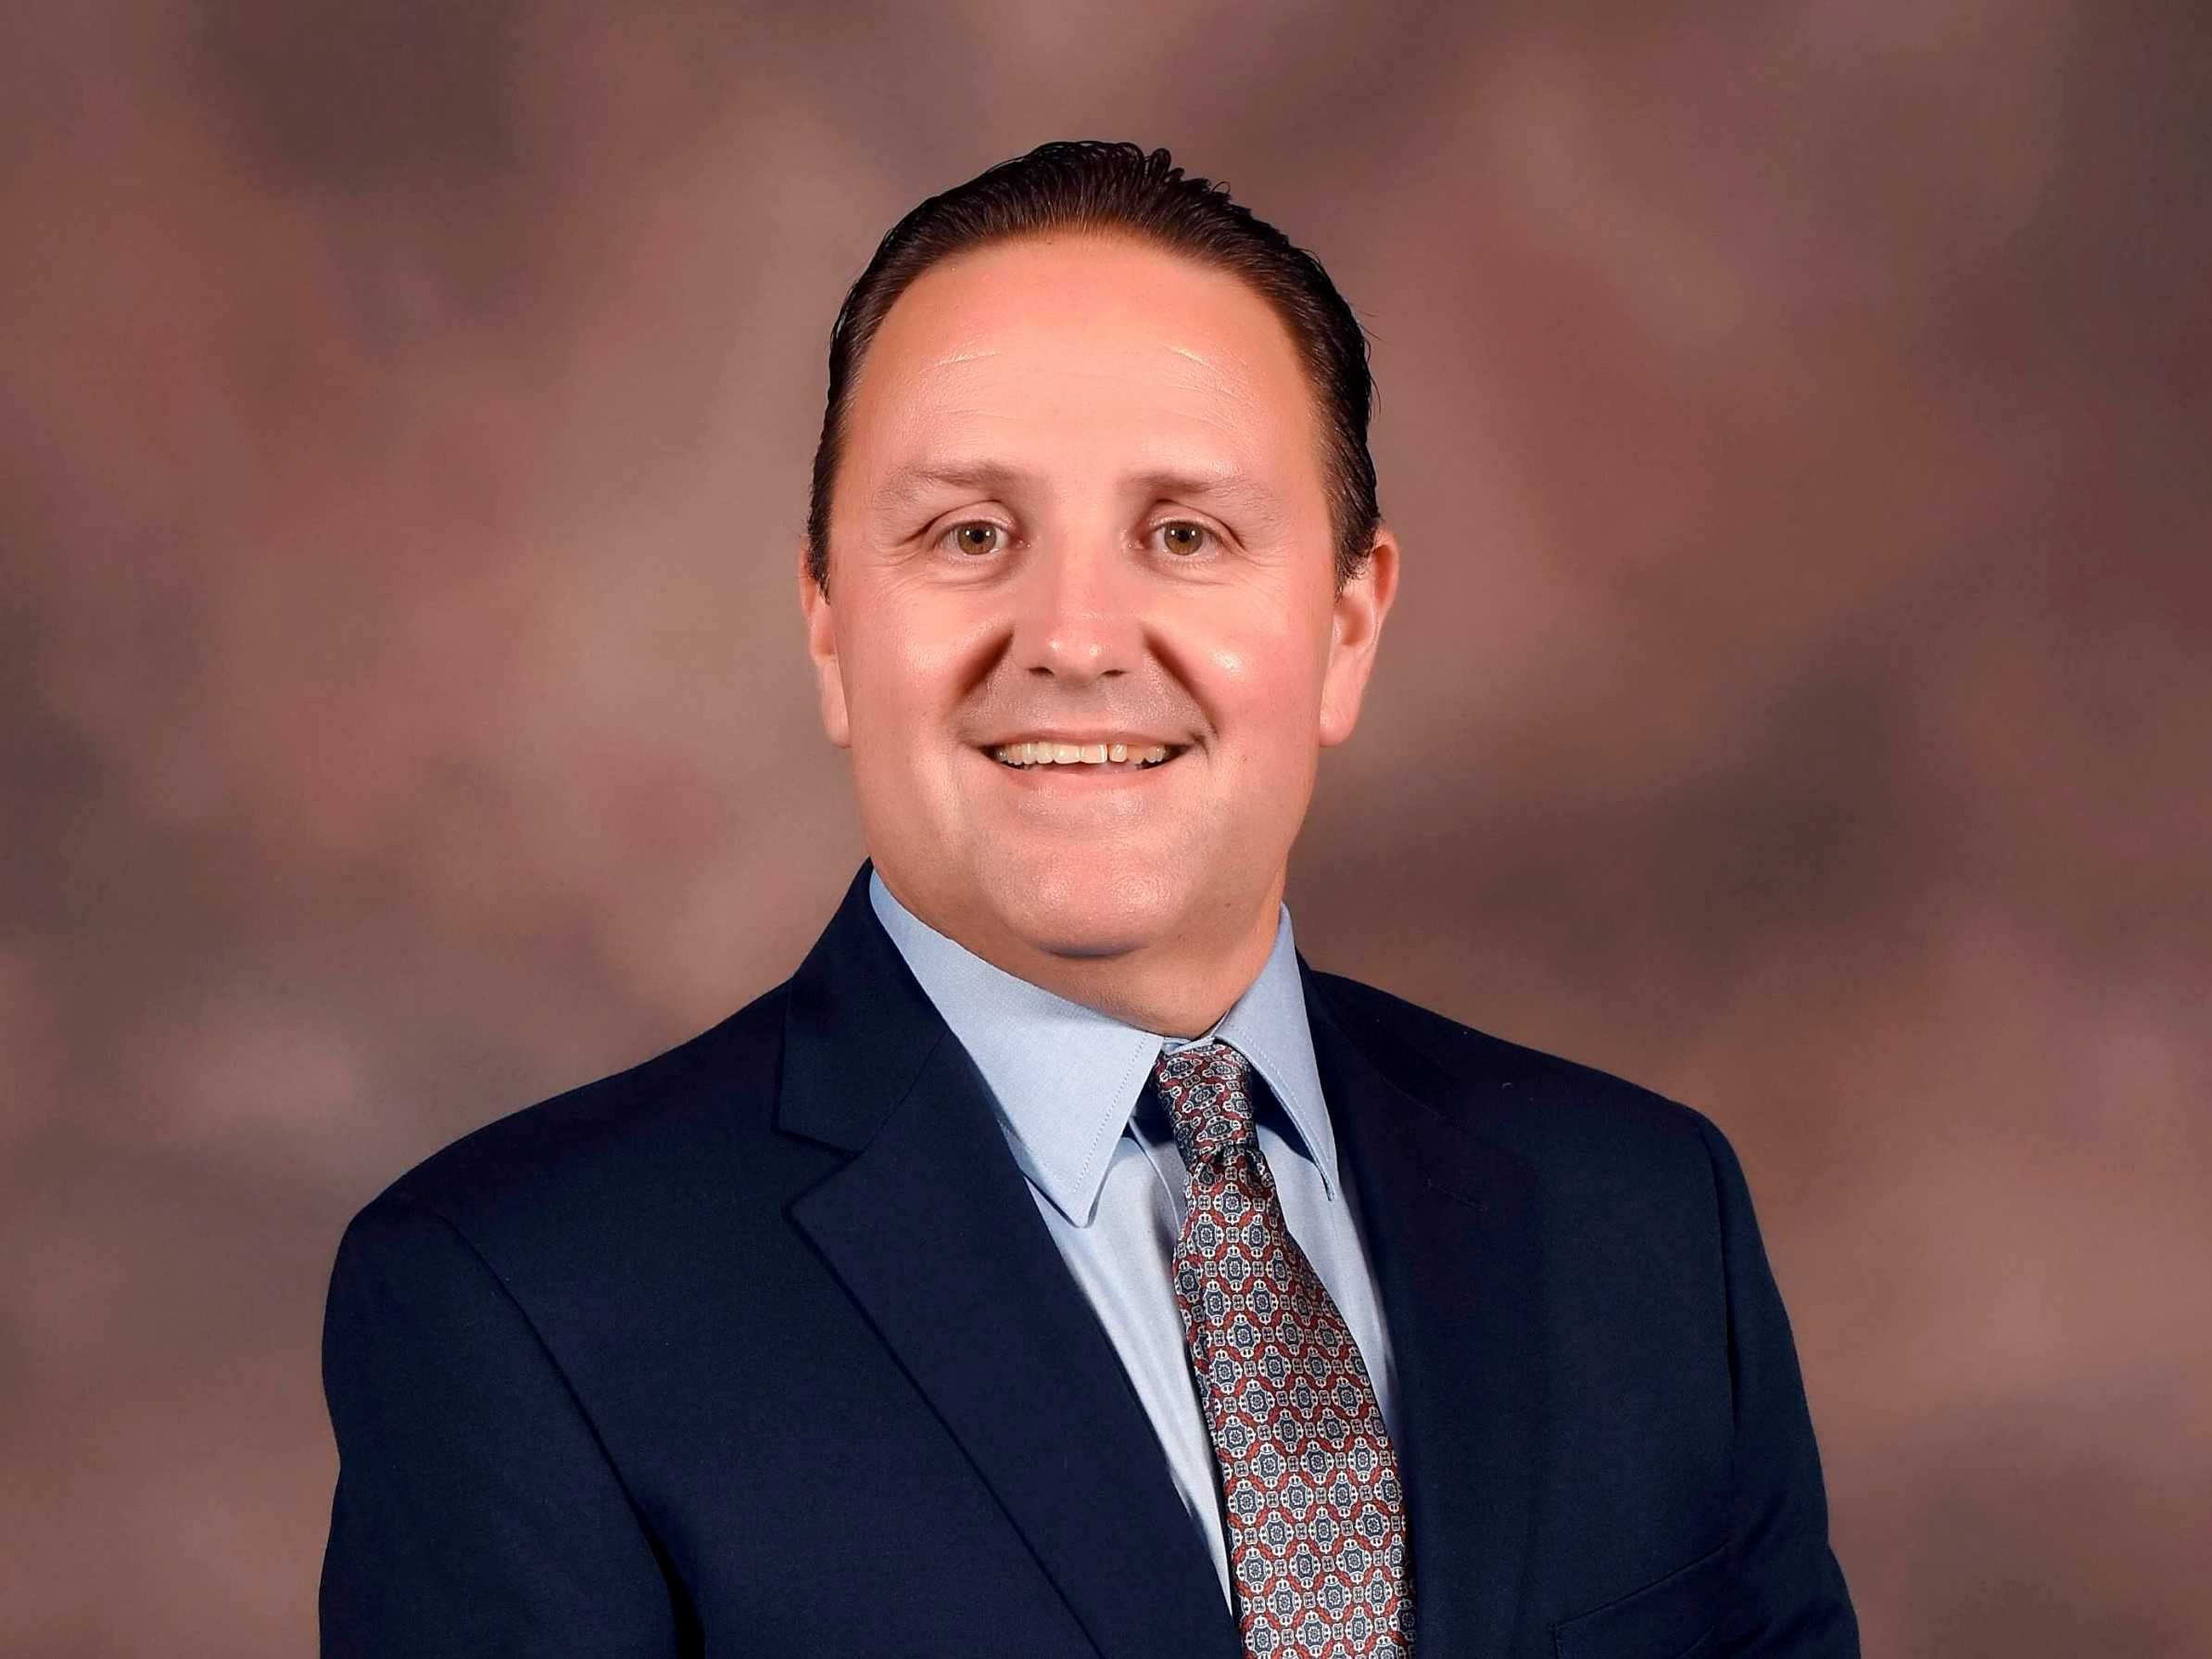 City Council: Mike Marostica (District 4)